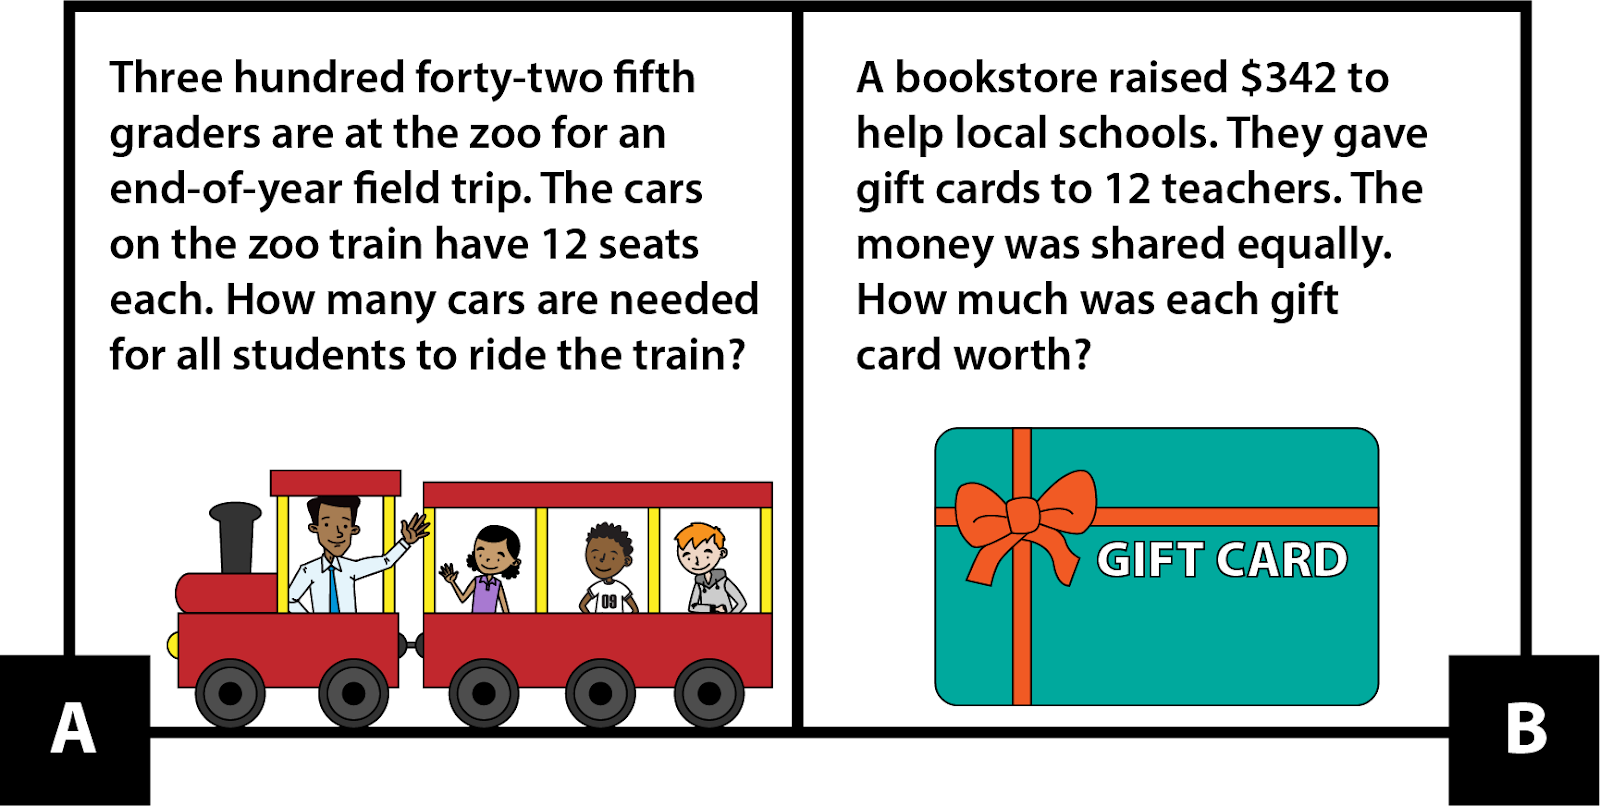 A: Three hundred forty-two fifth graders are at the zoo for an end-of-year field trip. The cars on the zoo train have 12 seats each. How many cars are needed for all students to ride the train? B: A bookstore raised $342 to help local schools. They gave gift cards to 12 teachers. The money was shared equally. How much was each gift card worth?